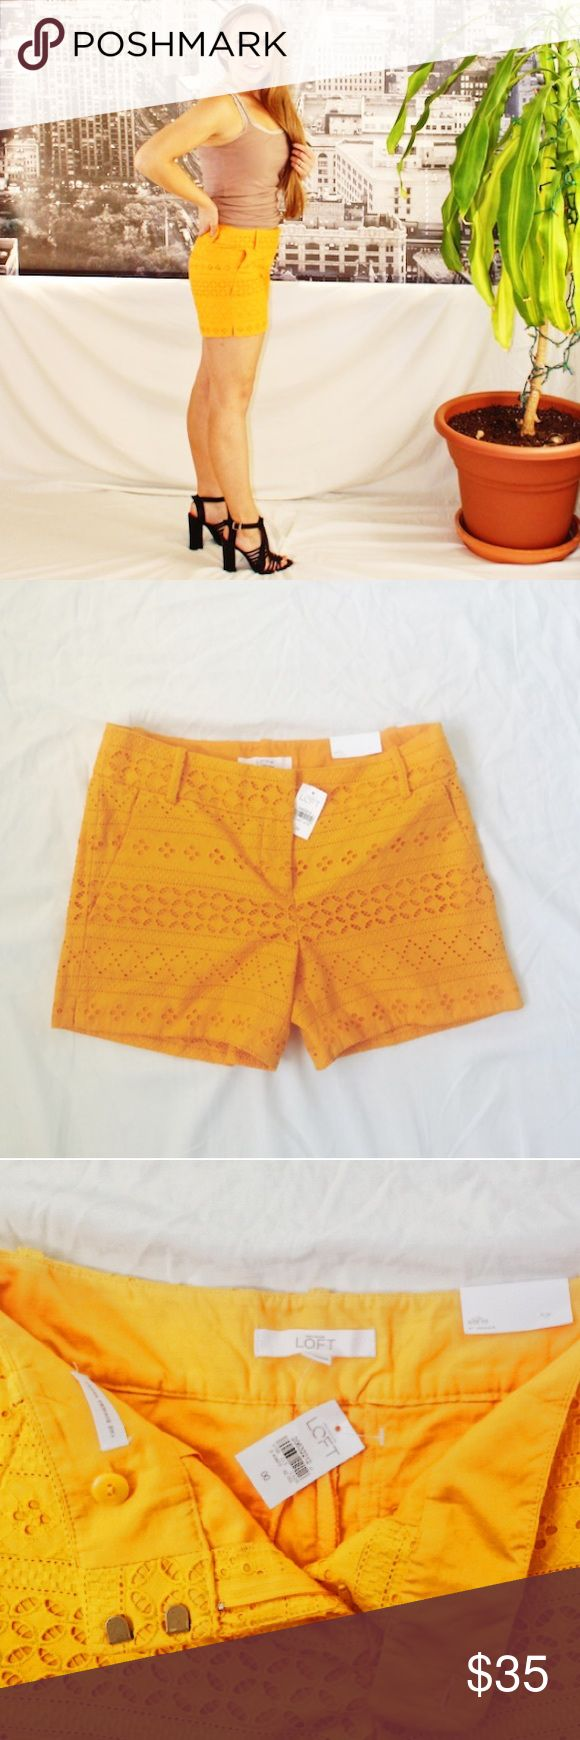 "NWT LOFT Riviera Eyelet Shorts Cotton eyelet shorts from LOFT with a 4"" inseam. The color (oh that COLOR!) is a vibrant goldenrod. LOFT Shorts"